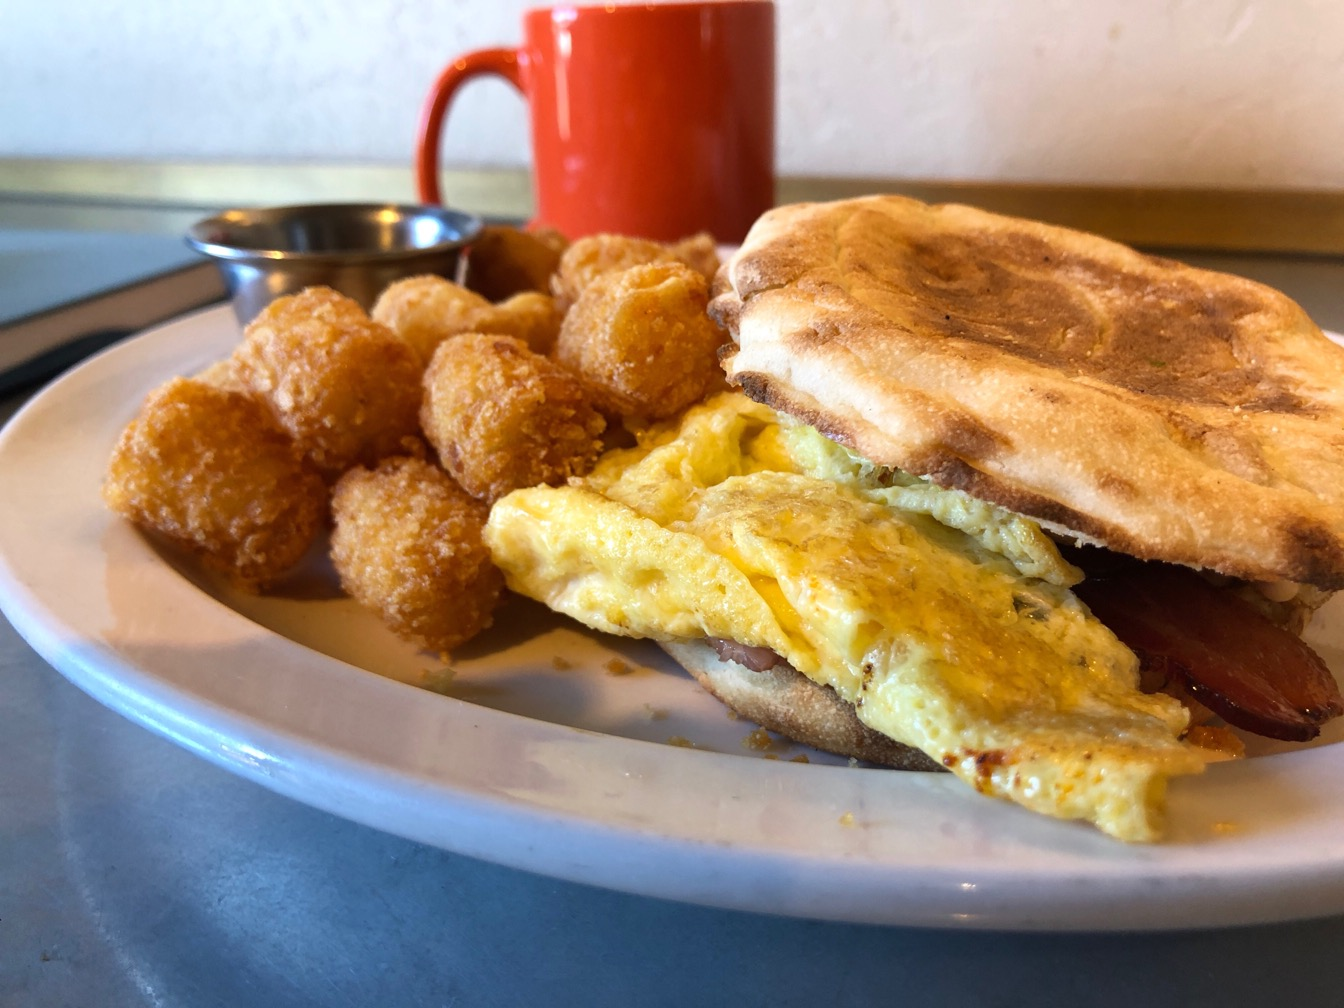 Photo of an English muffin egg sandwich with tater tots and orange coffee cup.